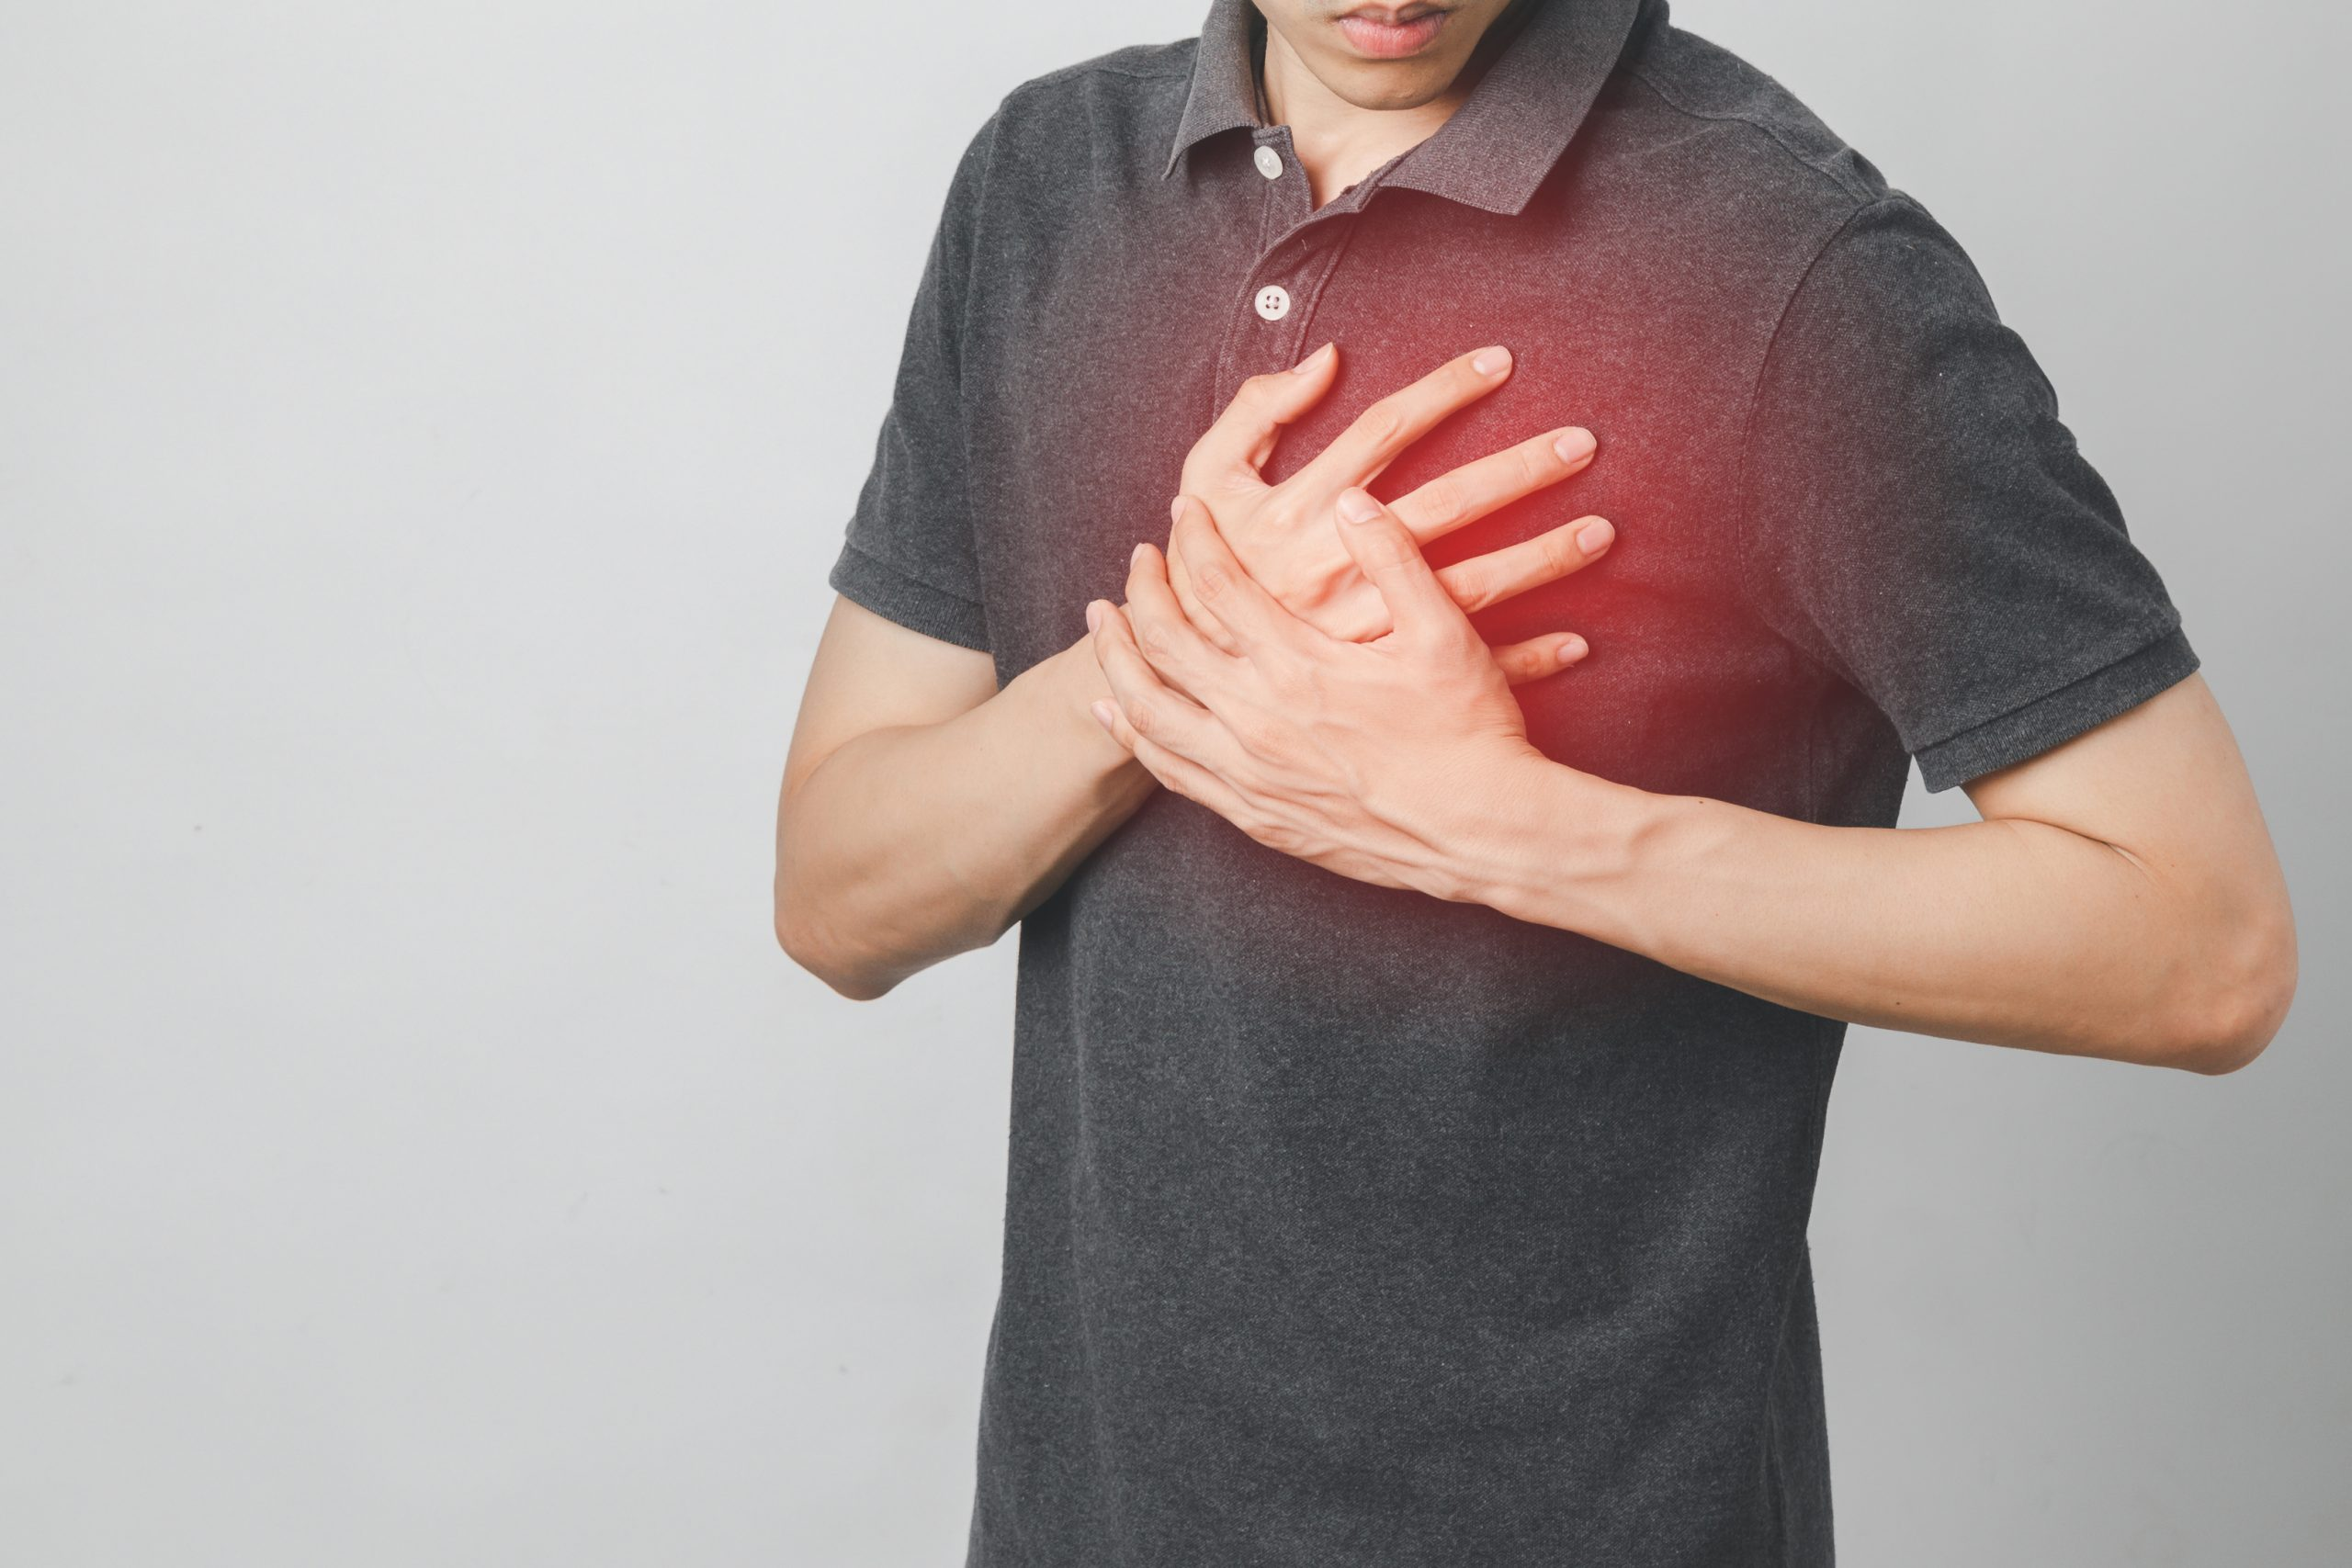 Man has chest pain suffering by heart disease, Cardiovascular disease, heart attack. Health care concept